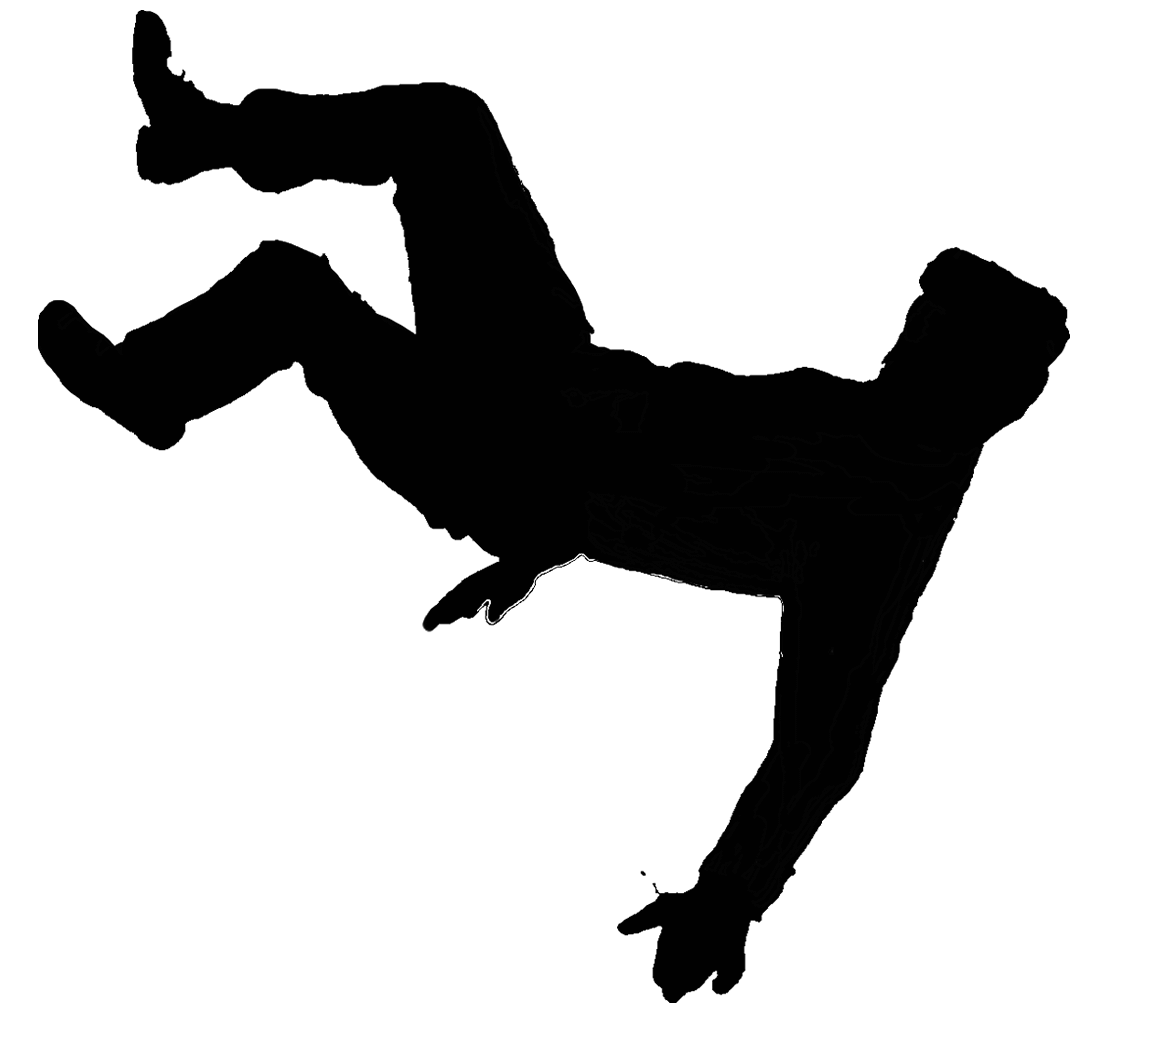 Person falling png. Man silhouette at getdrawings